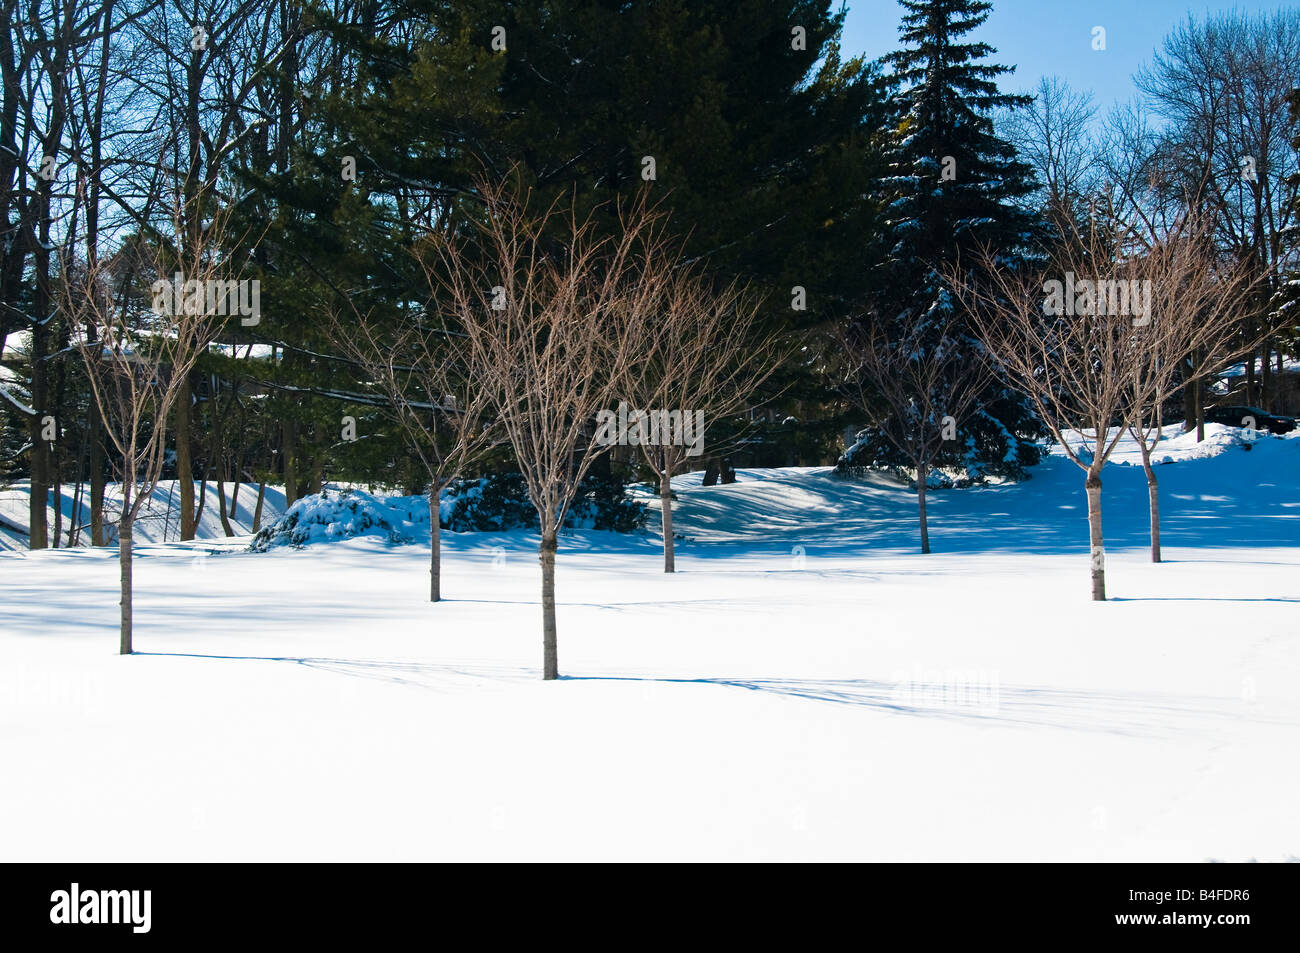 A canadian winter scene at Gairloch Gardens in Oakville, Ontario,Canada Stock Photo